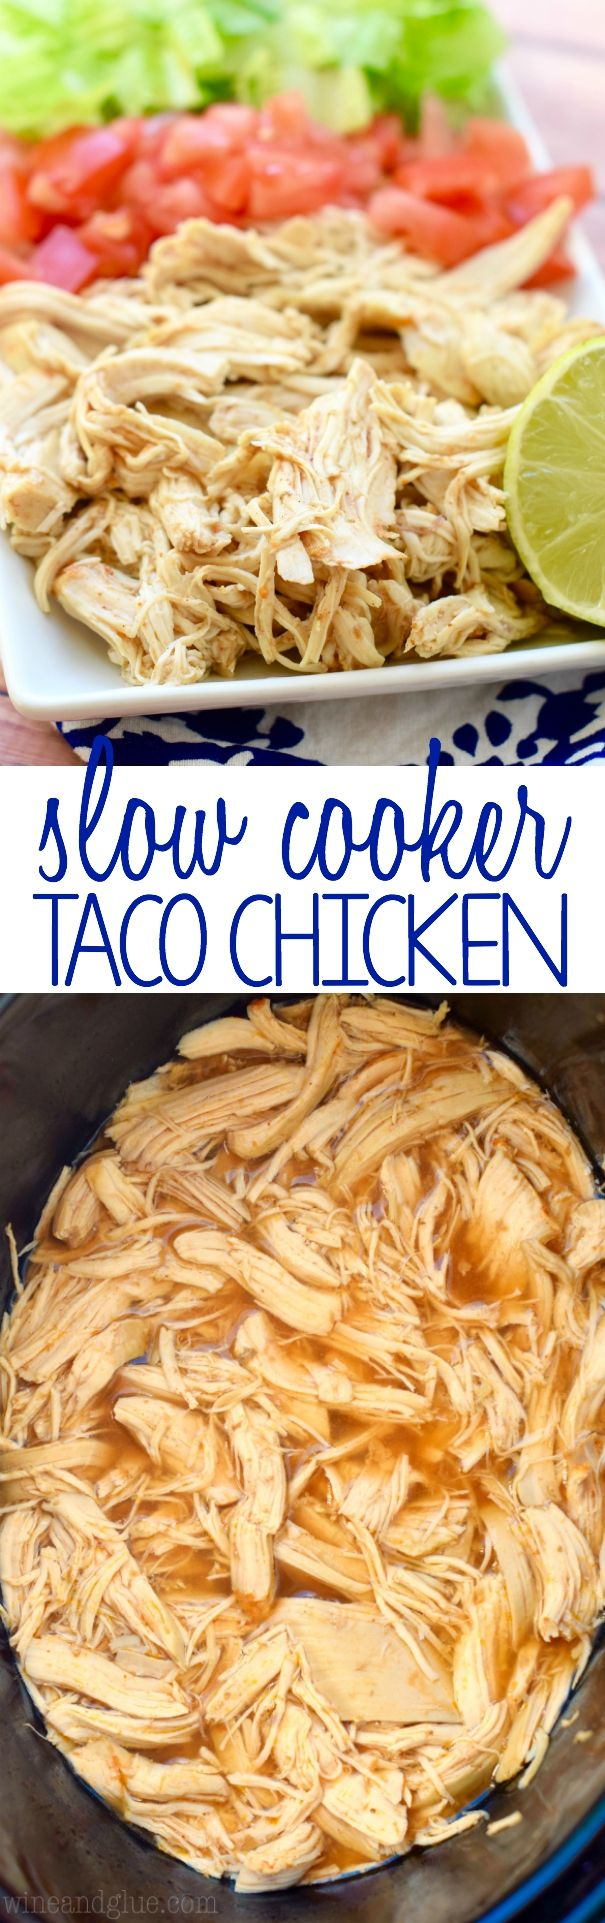 This Slow Cooker Taco Chicken is super simple to make, but it is the start of so many delicious dinners! It needs to be part of your regular dinner rotations!: